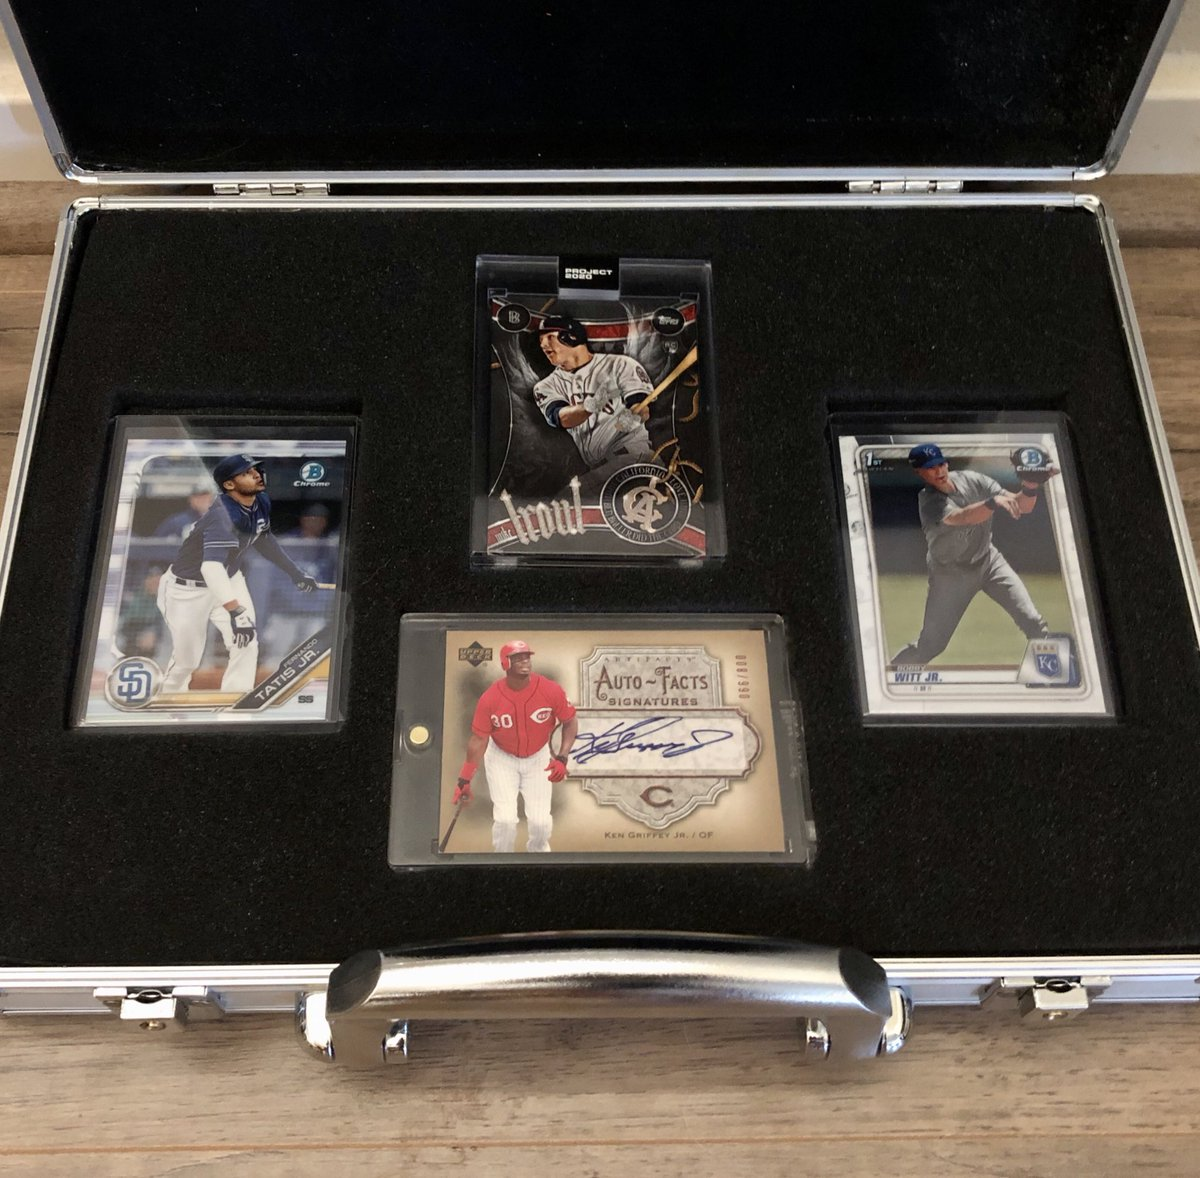 Mega Giveaway!  Flawless Briefcase  Griffey Jr Auto Project 2020 Trout  Follow & RT to enter Randomize list 3x for winner Ends 7/10/20 https://t.co/aCBl0tVcqn